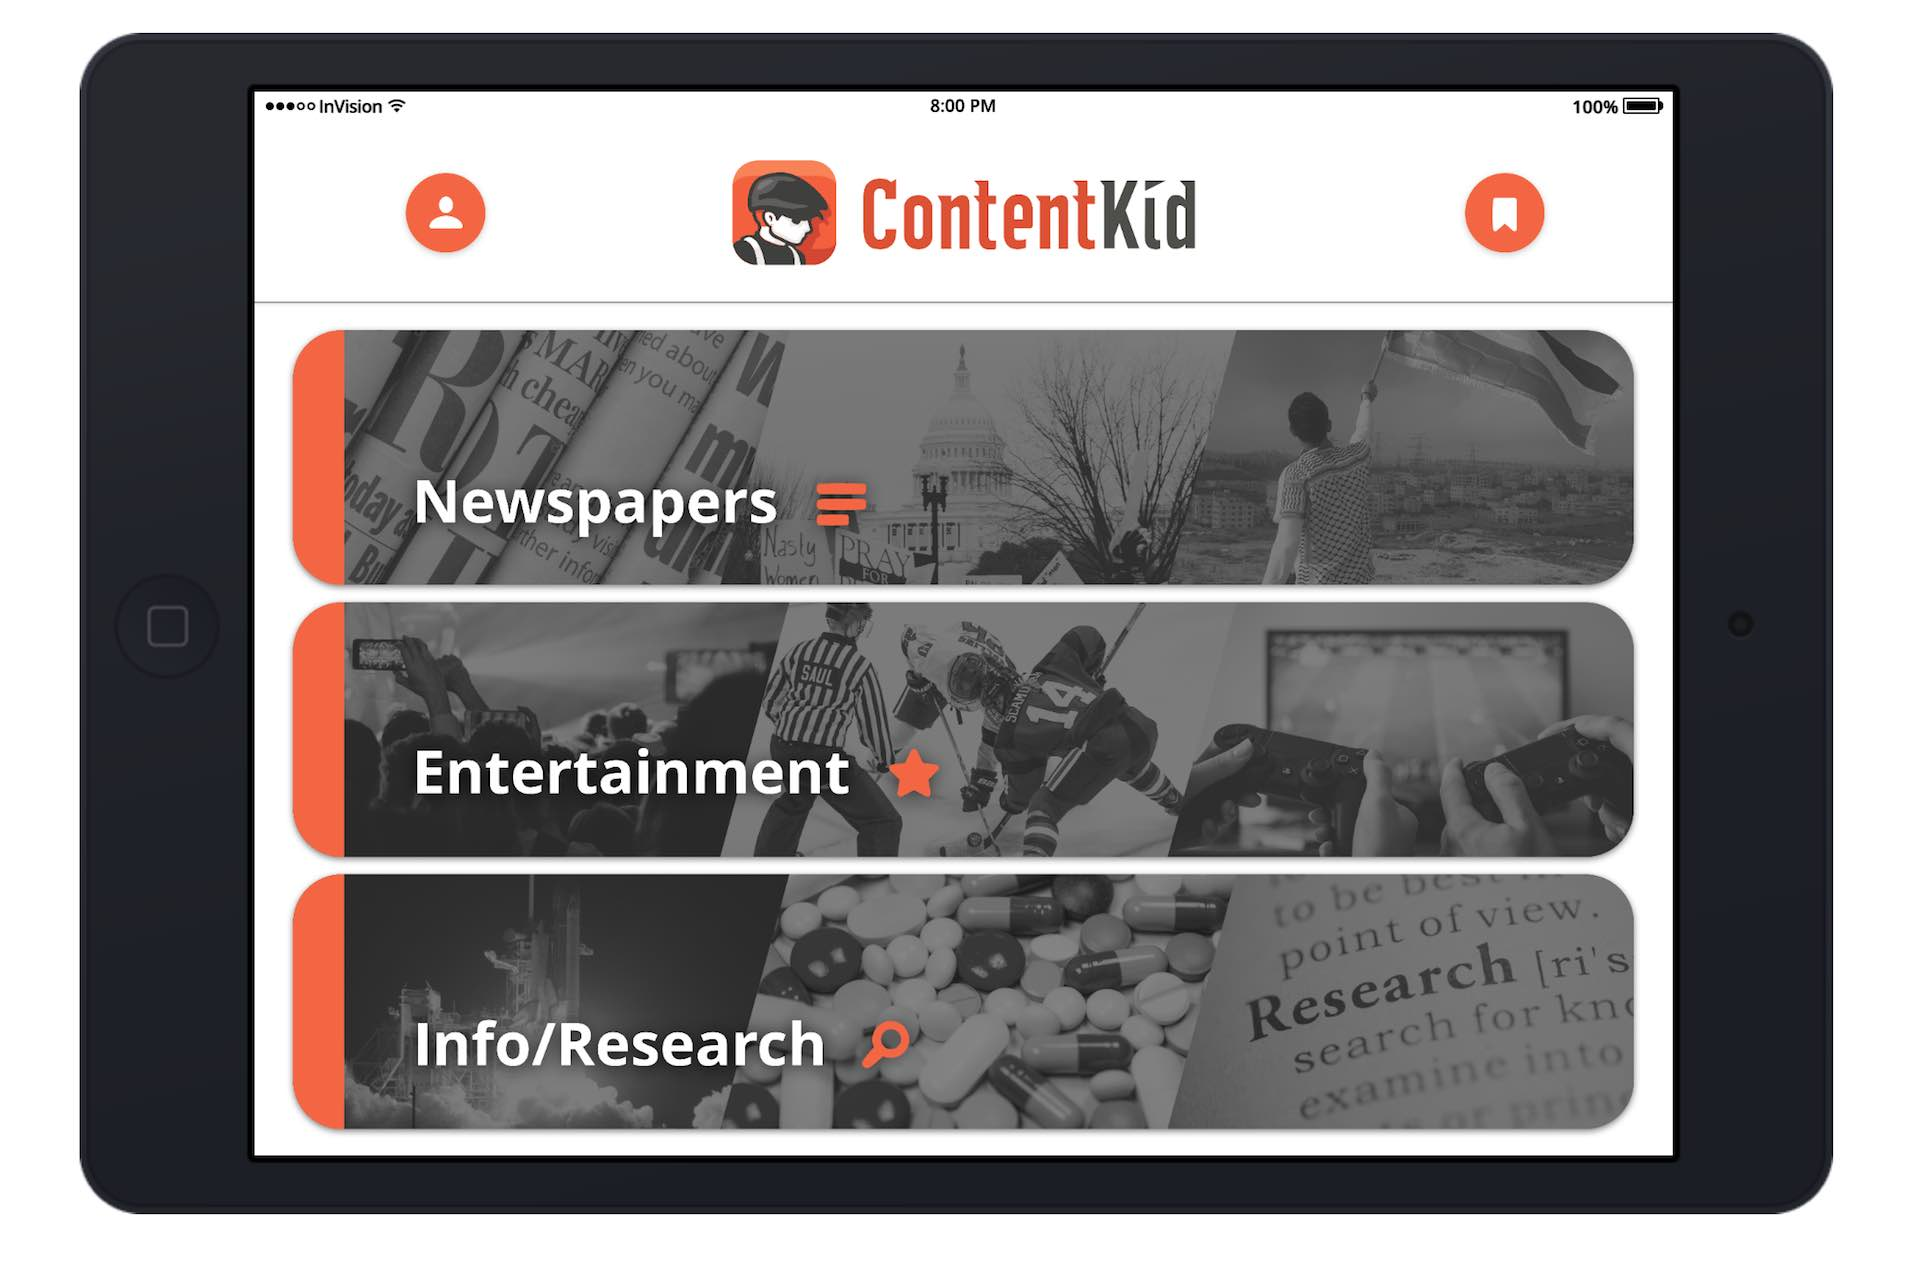 The ContentKid App Home Screen Design by Moonbase Labs